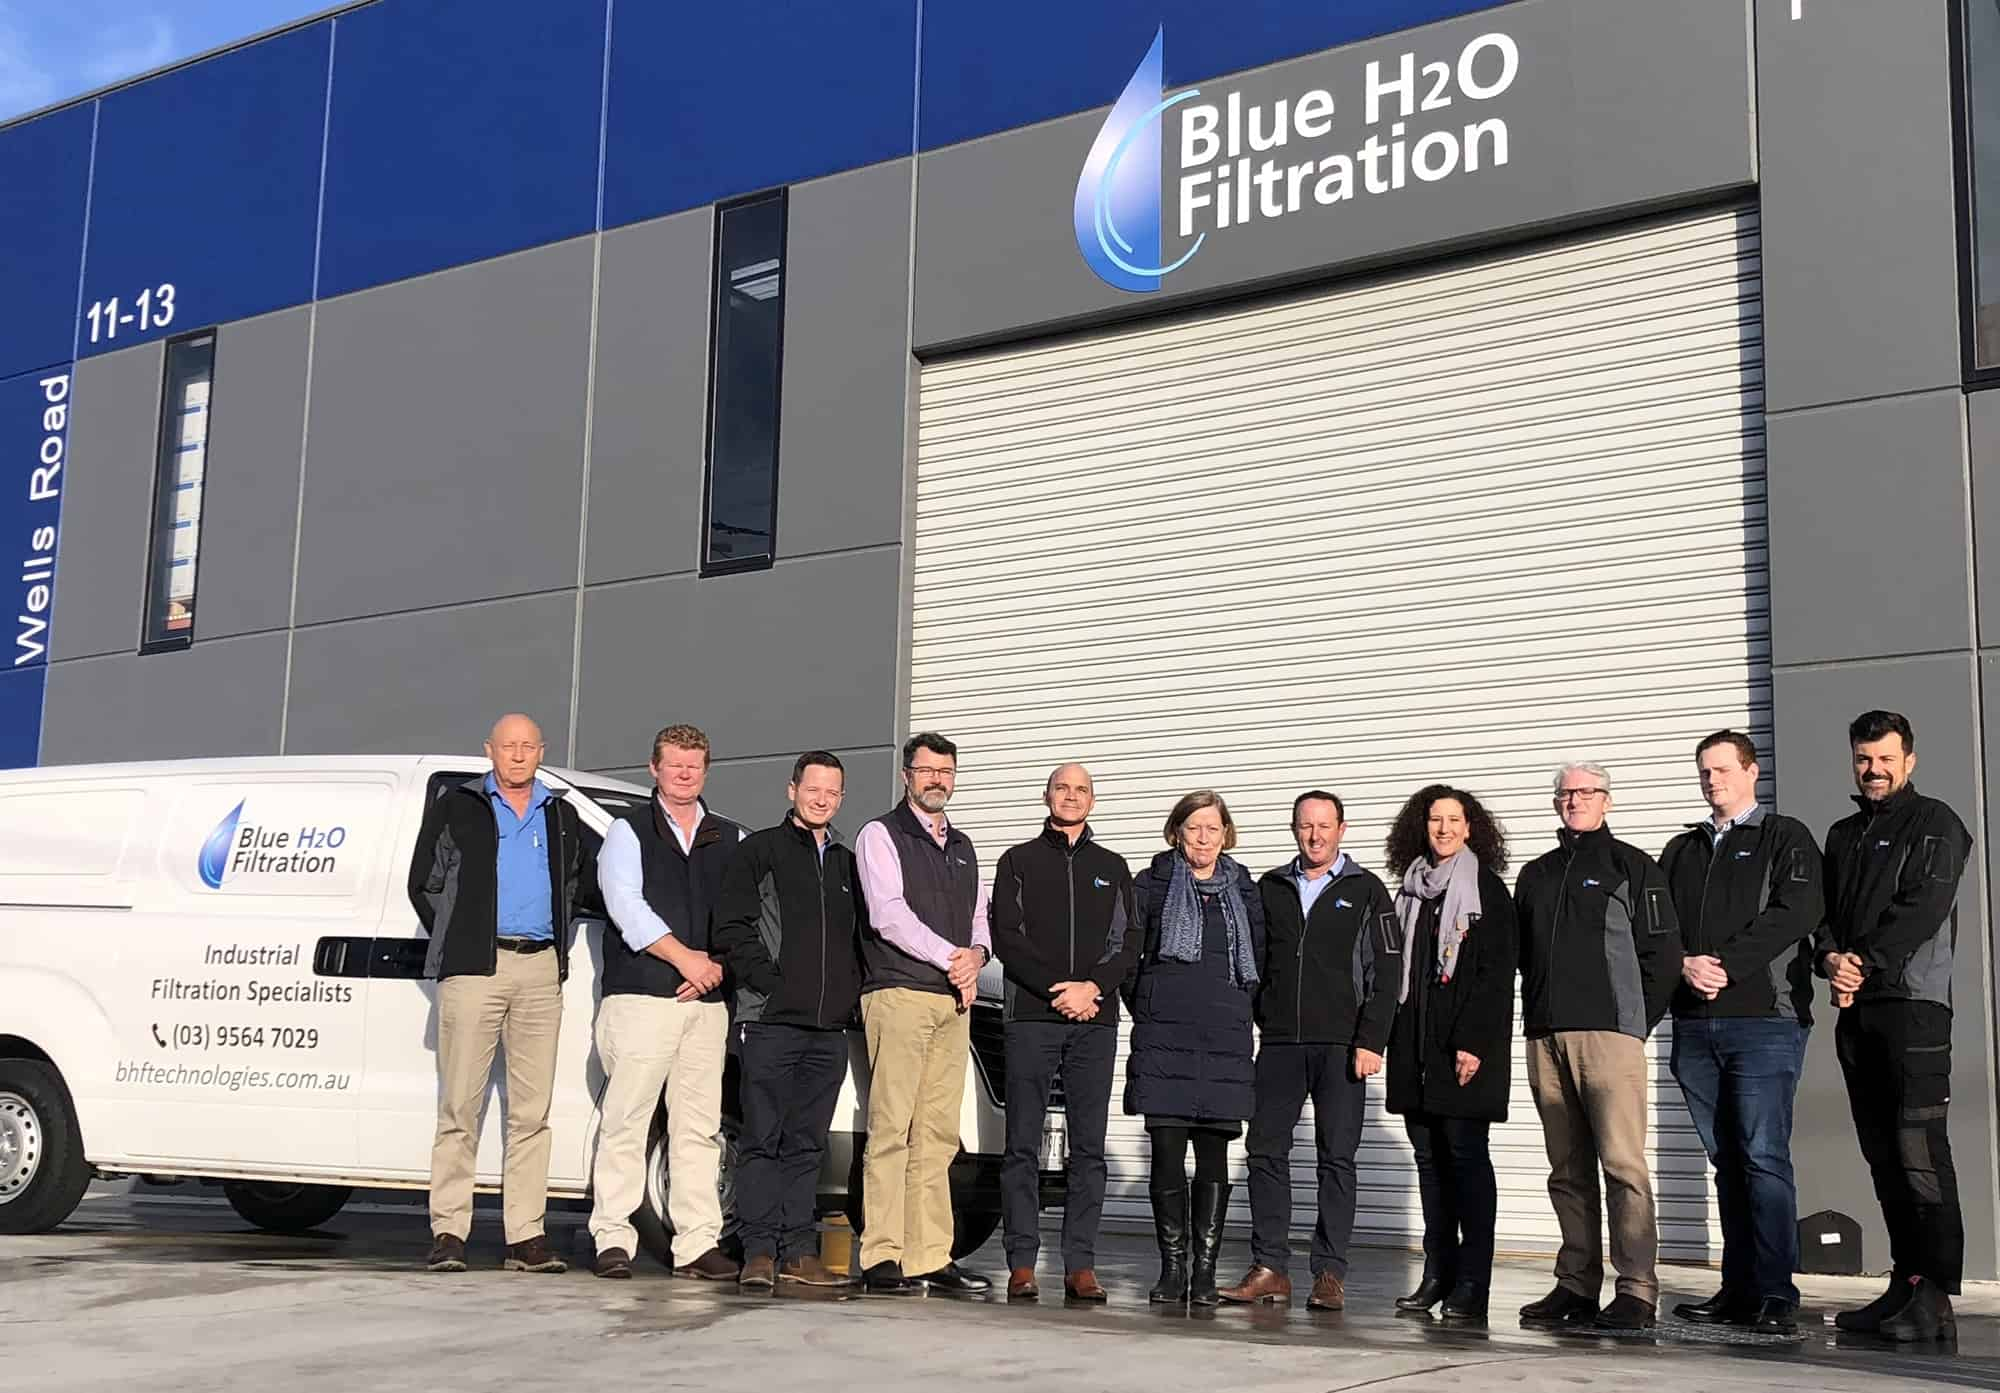 Blue H2O Filtration BHF Technologies Melbourne Australia Team